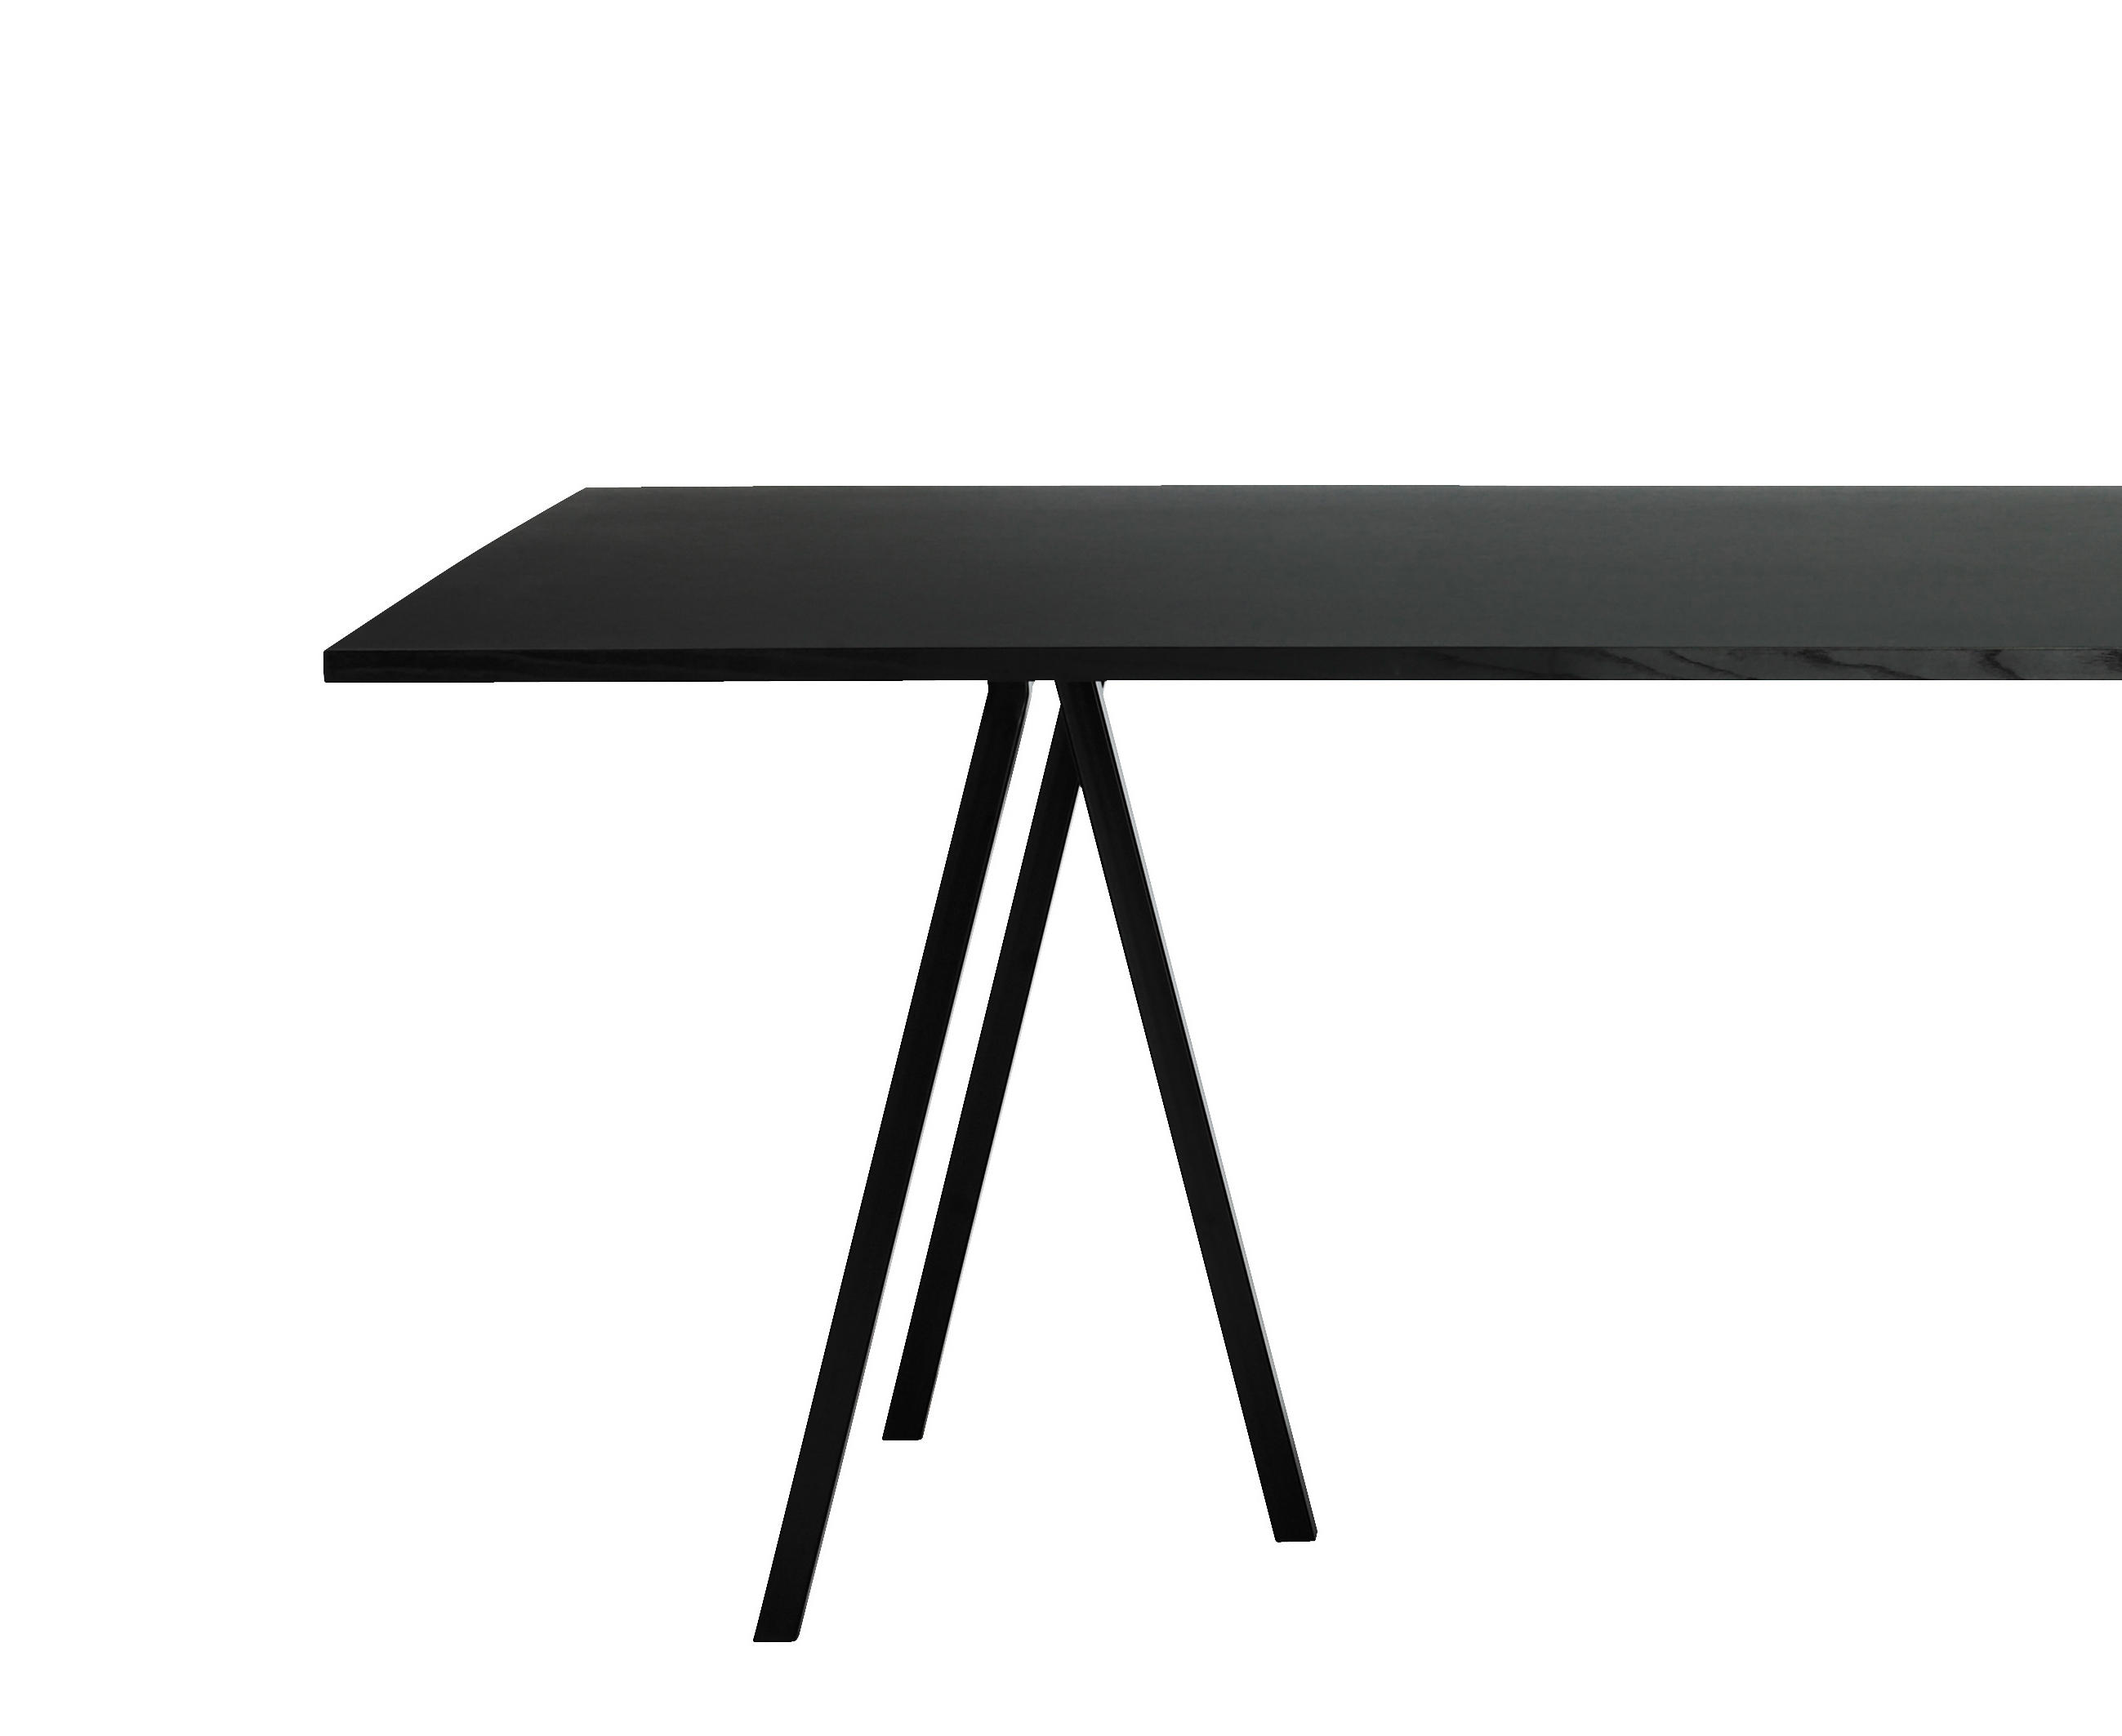 loop stand high table 160 bar tables from hay architonic. Black Bedroom Furniture Sets. Home Design Ideas